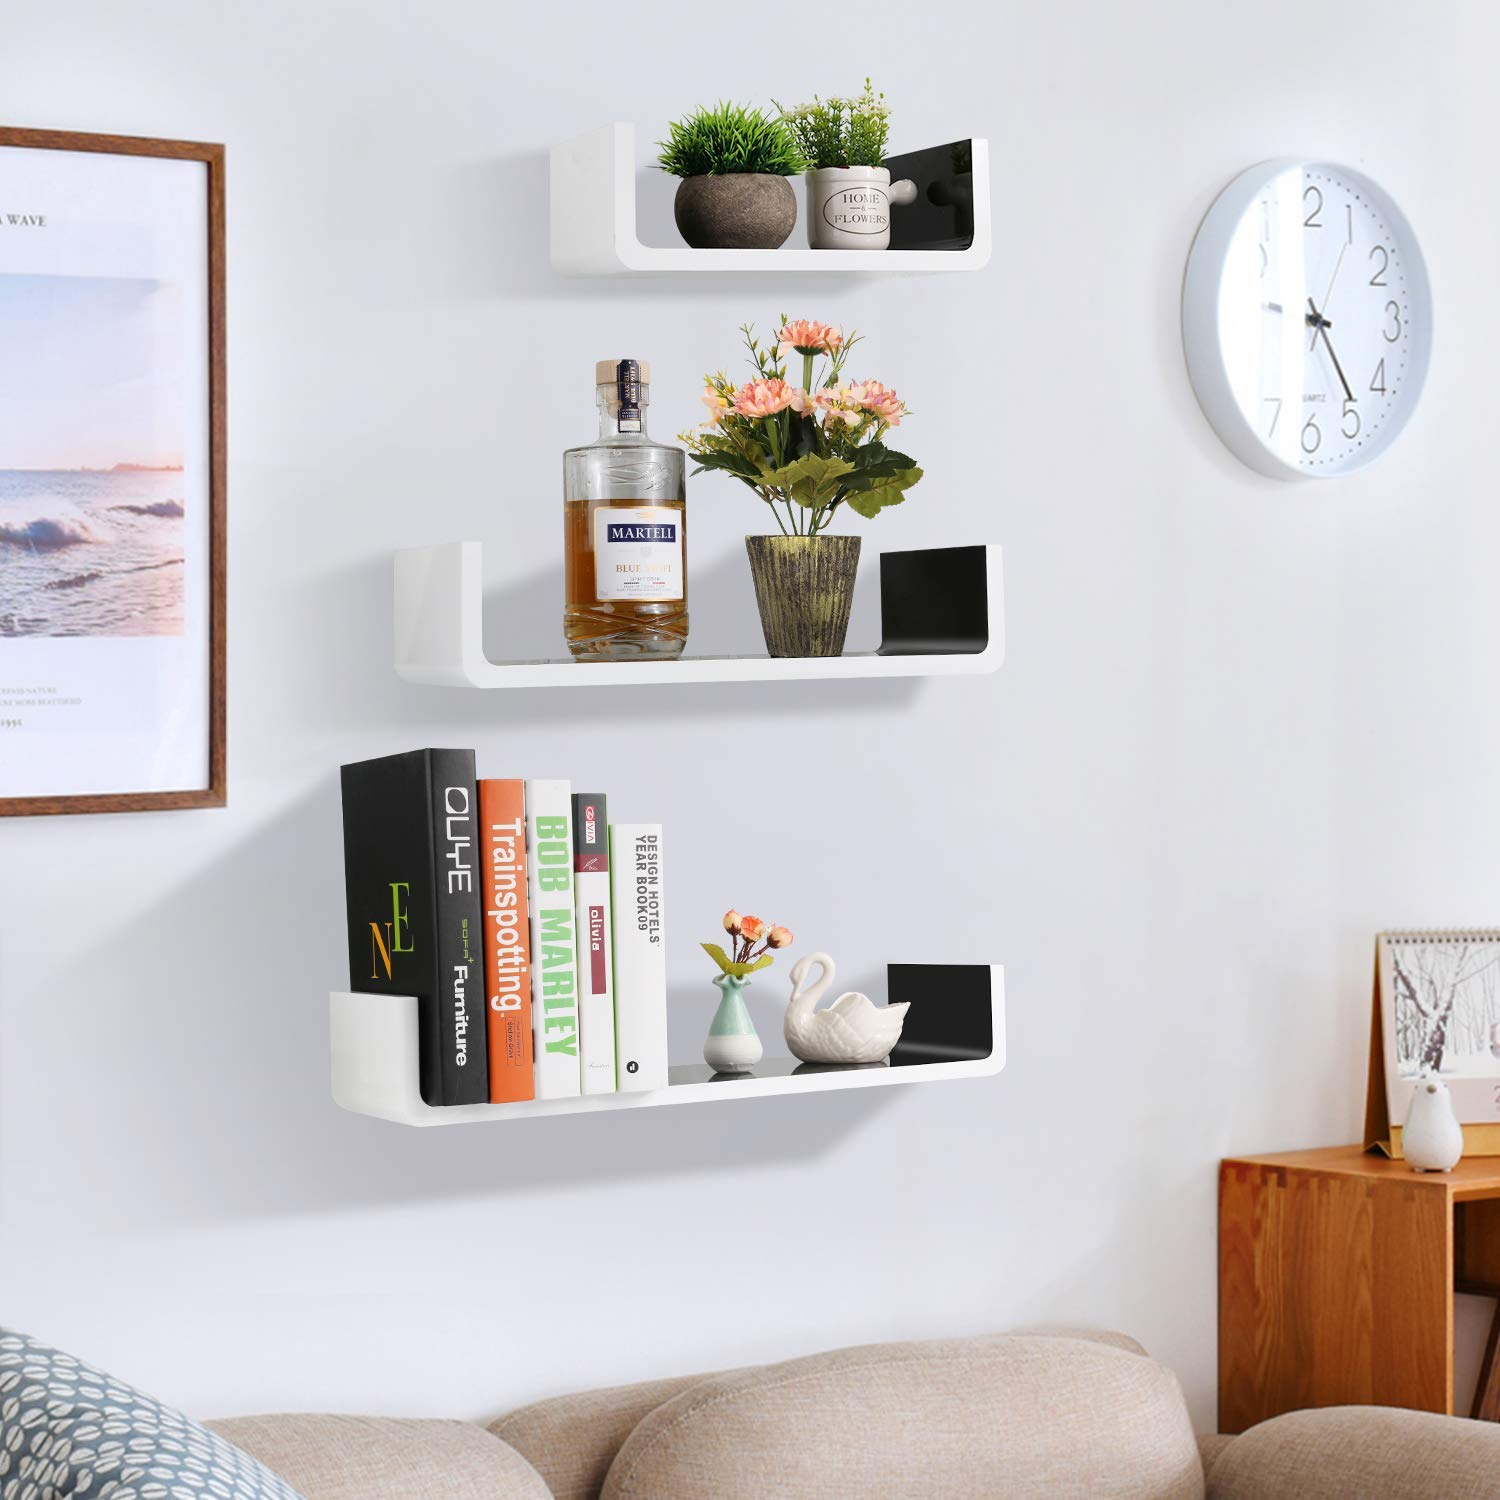 white and black wall shelves floating wooden qal wood living room shelving bookshelf storage set shape mount bookcase for ikea shelf holder cable closet bins movable kitchen